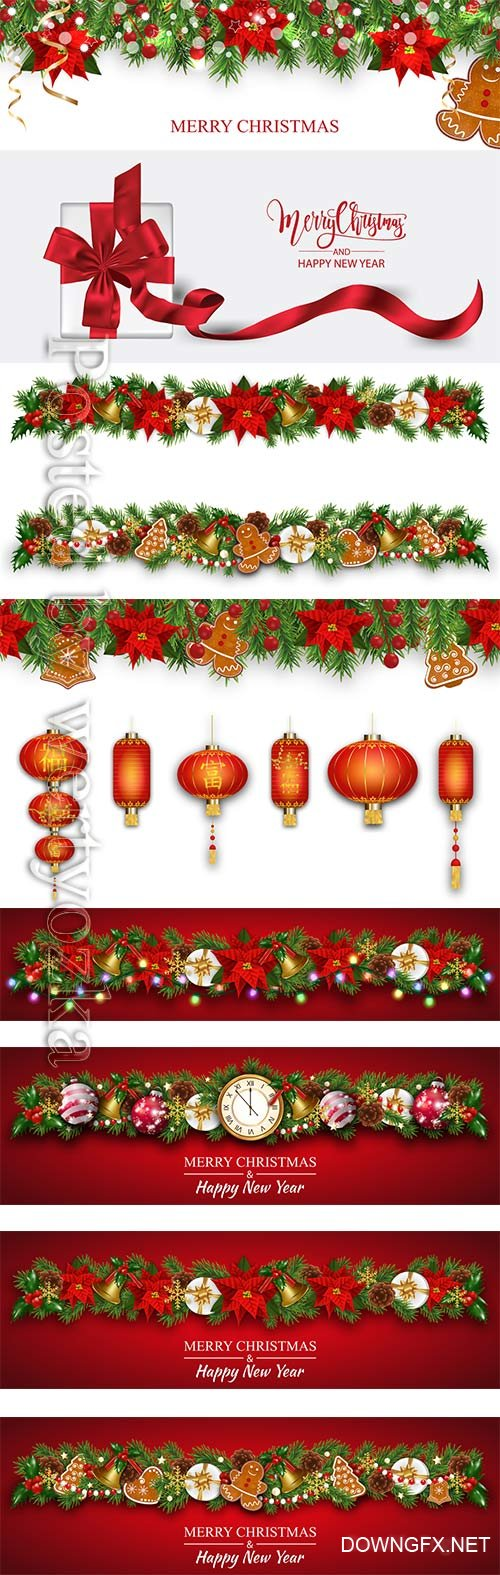 2020 Merry Chistmas and Happy New Year vector illustration # 13